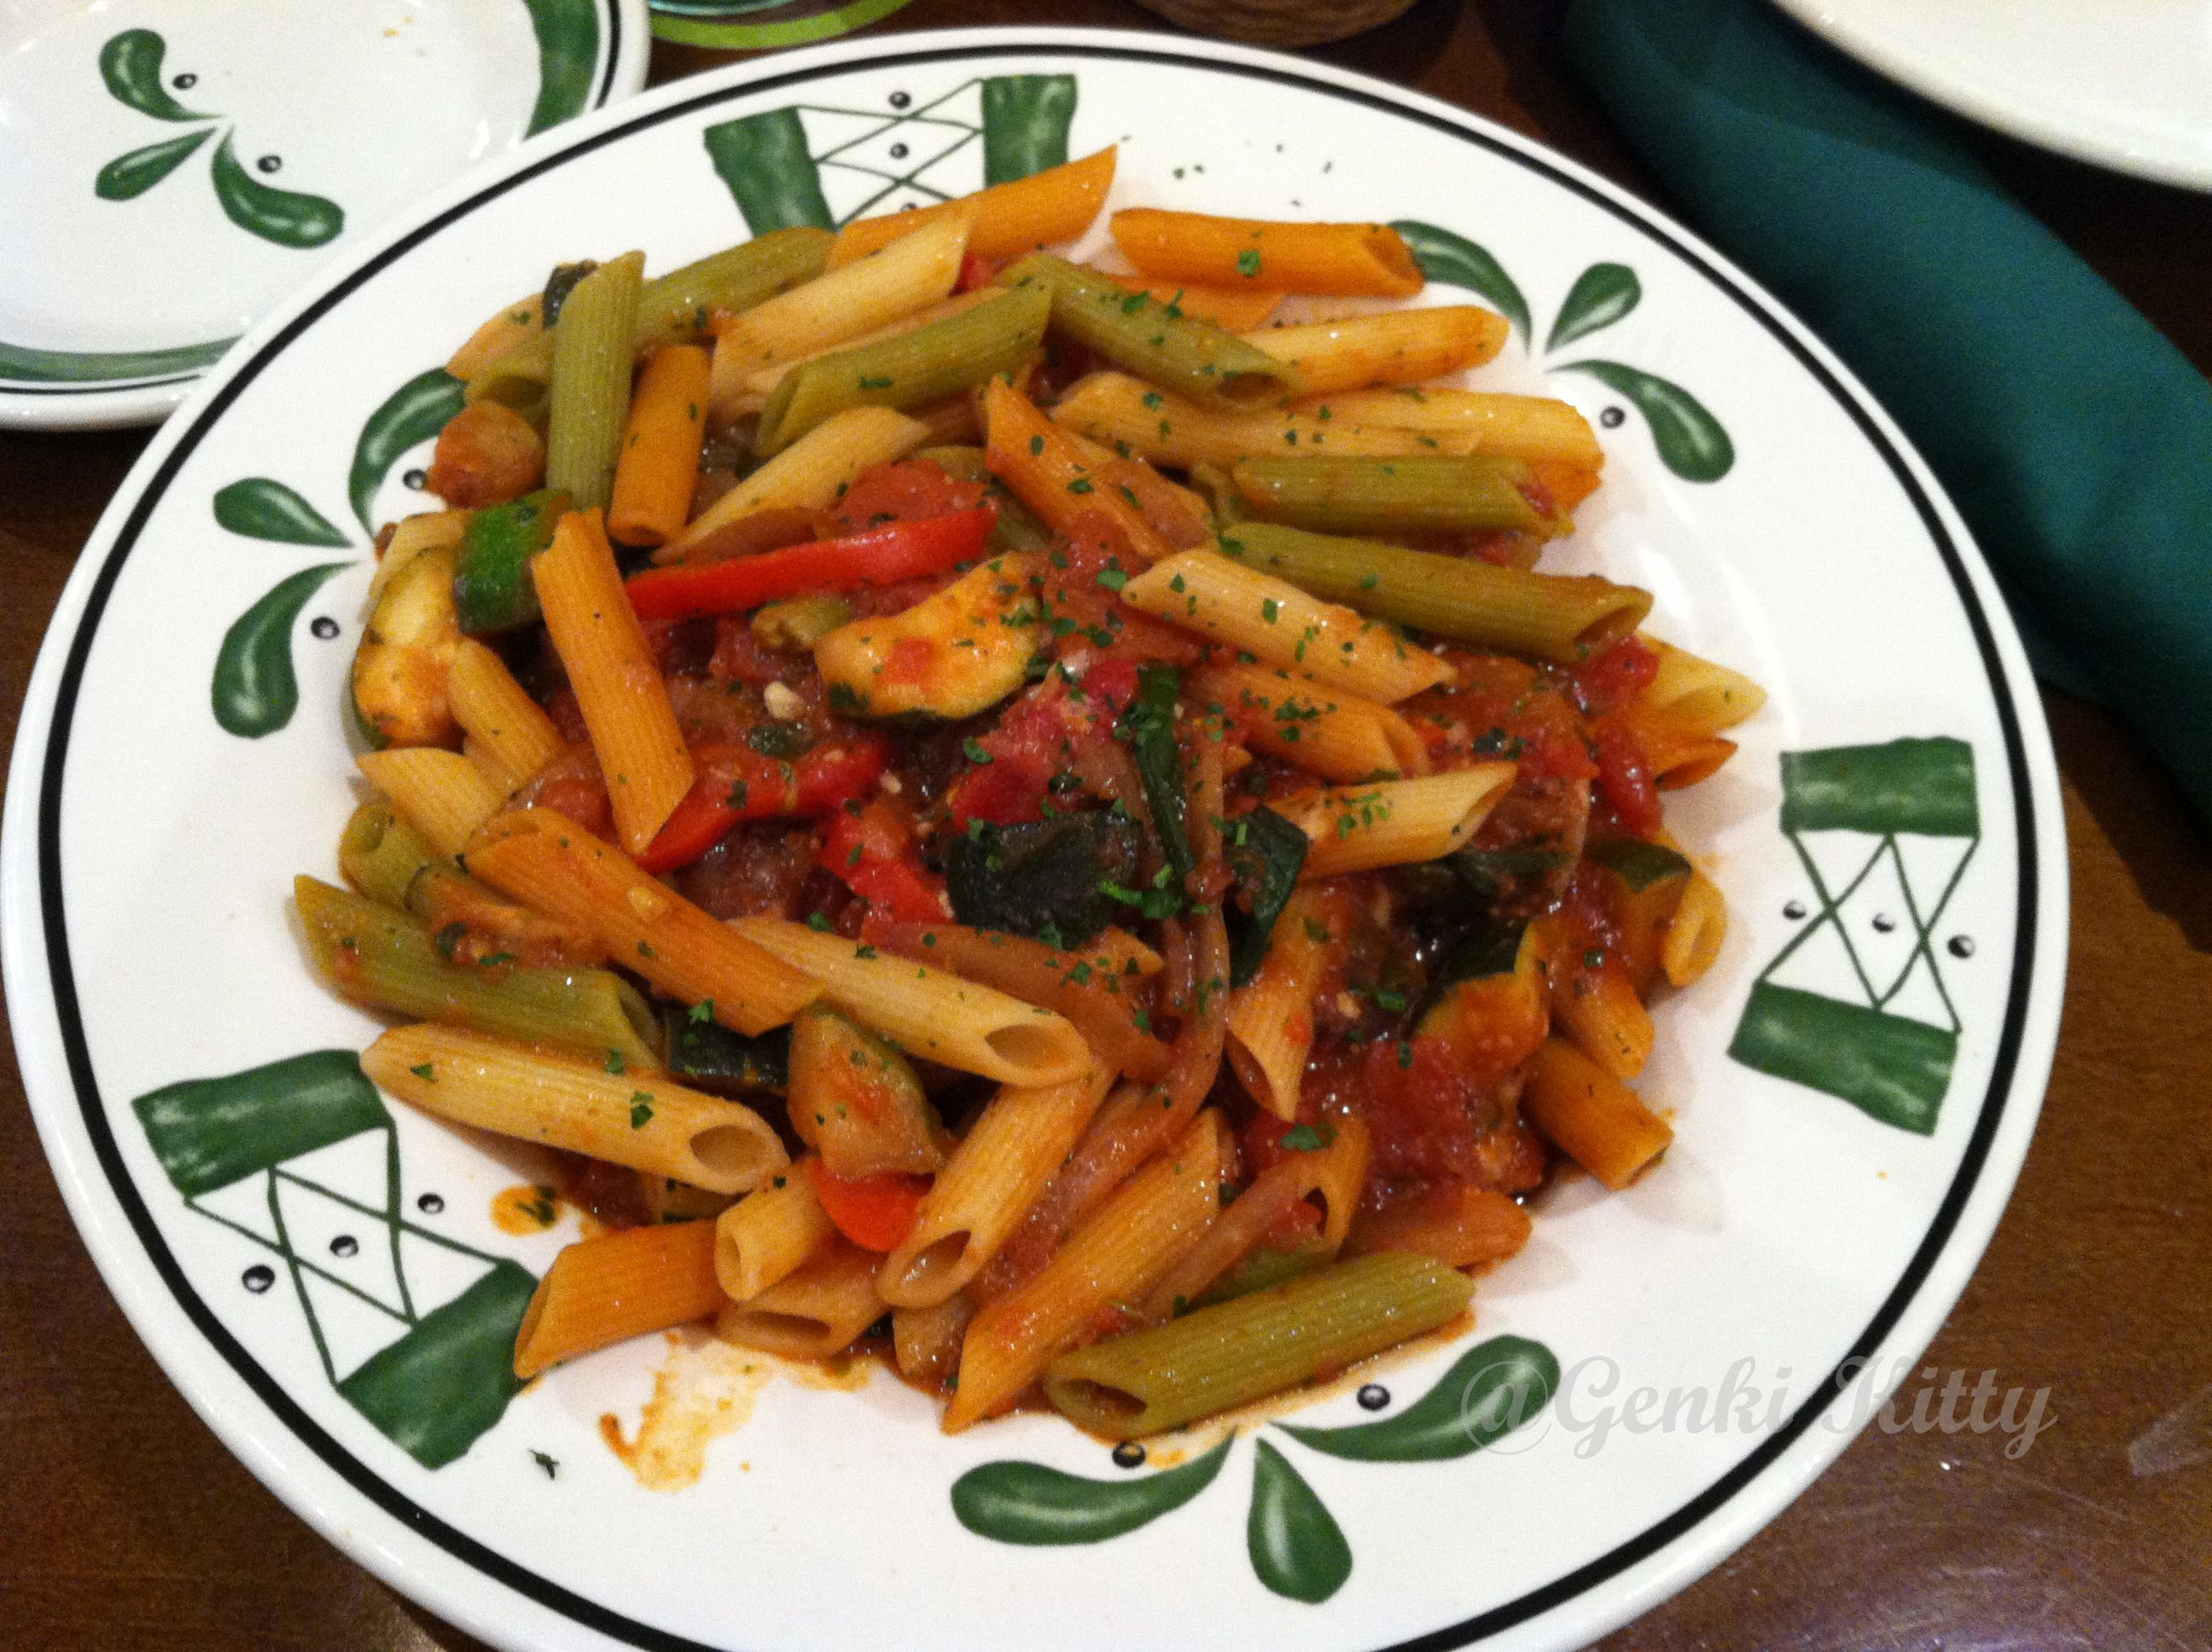 Vegan Options At The Olive Garden Vegan Restaurant Eats Pinterest Vegan Vegan Restaurants